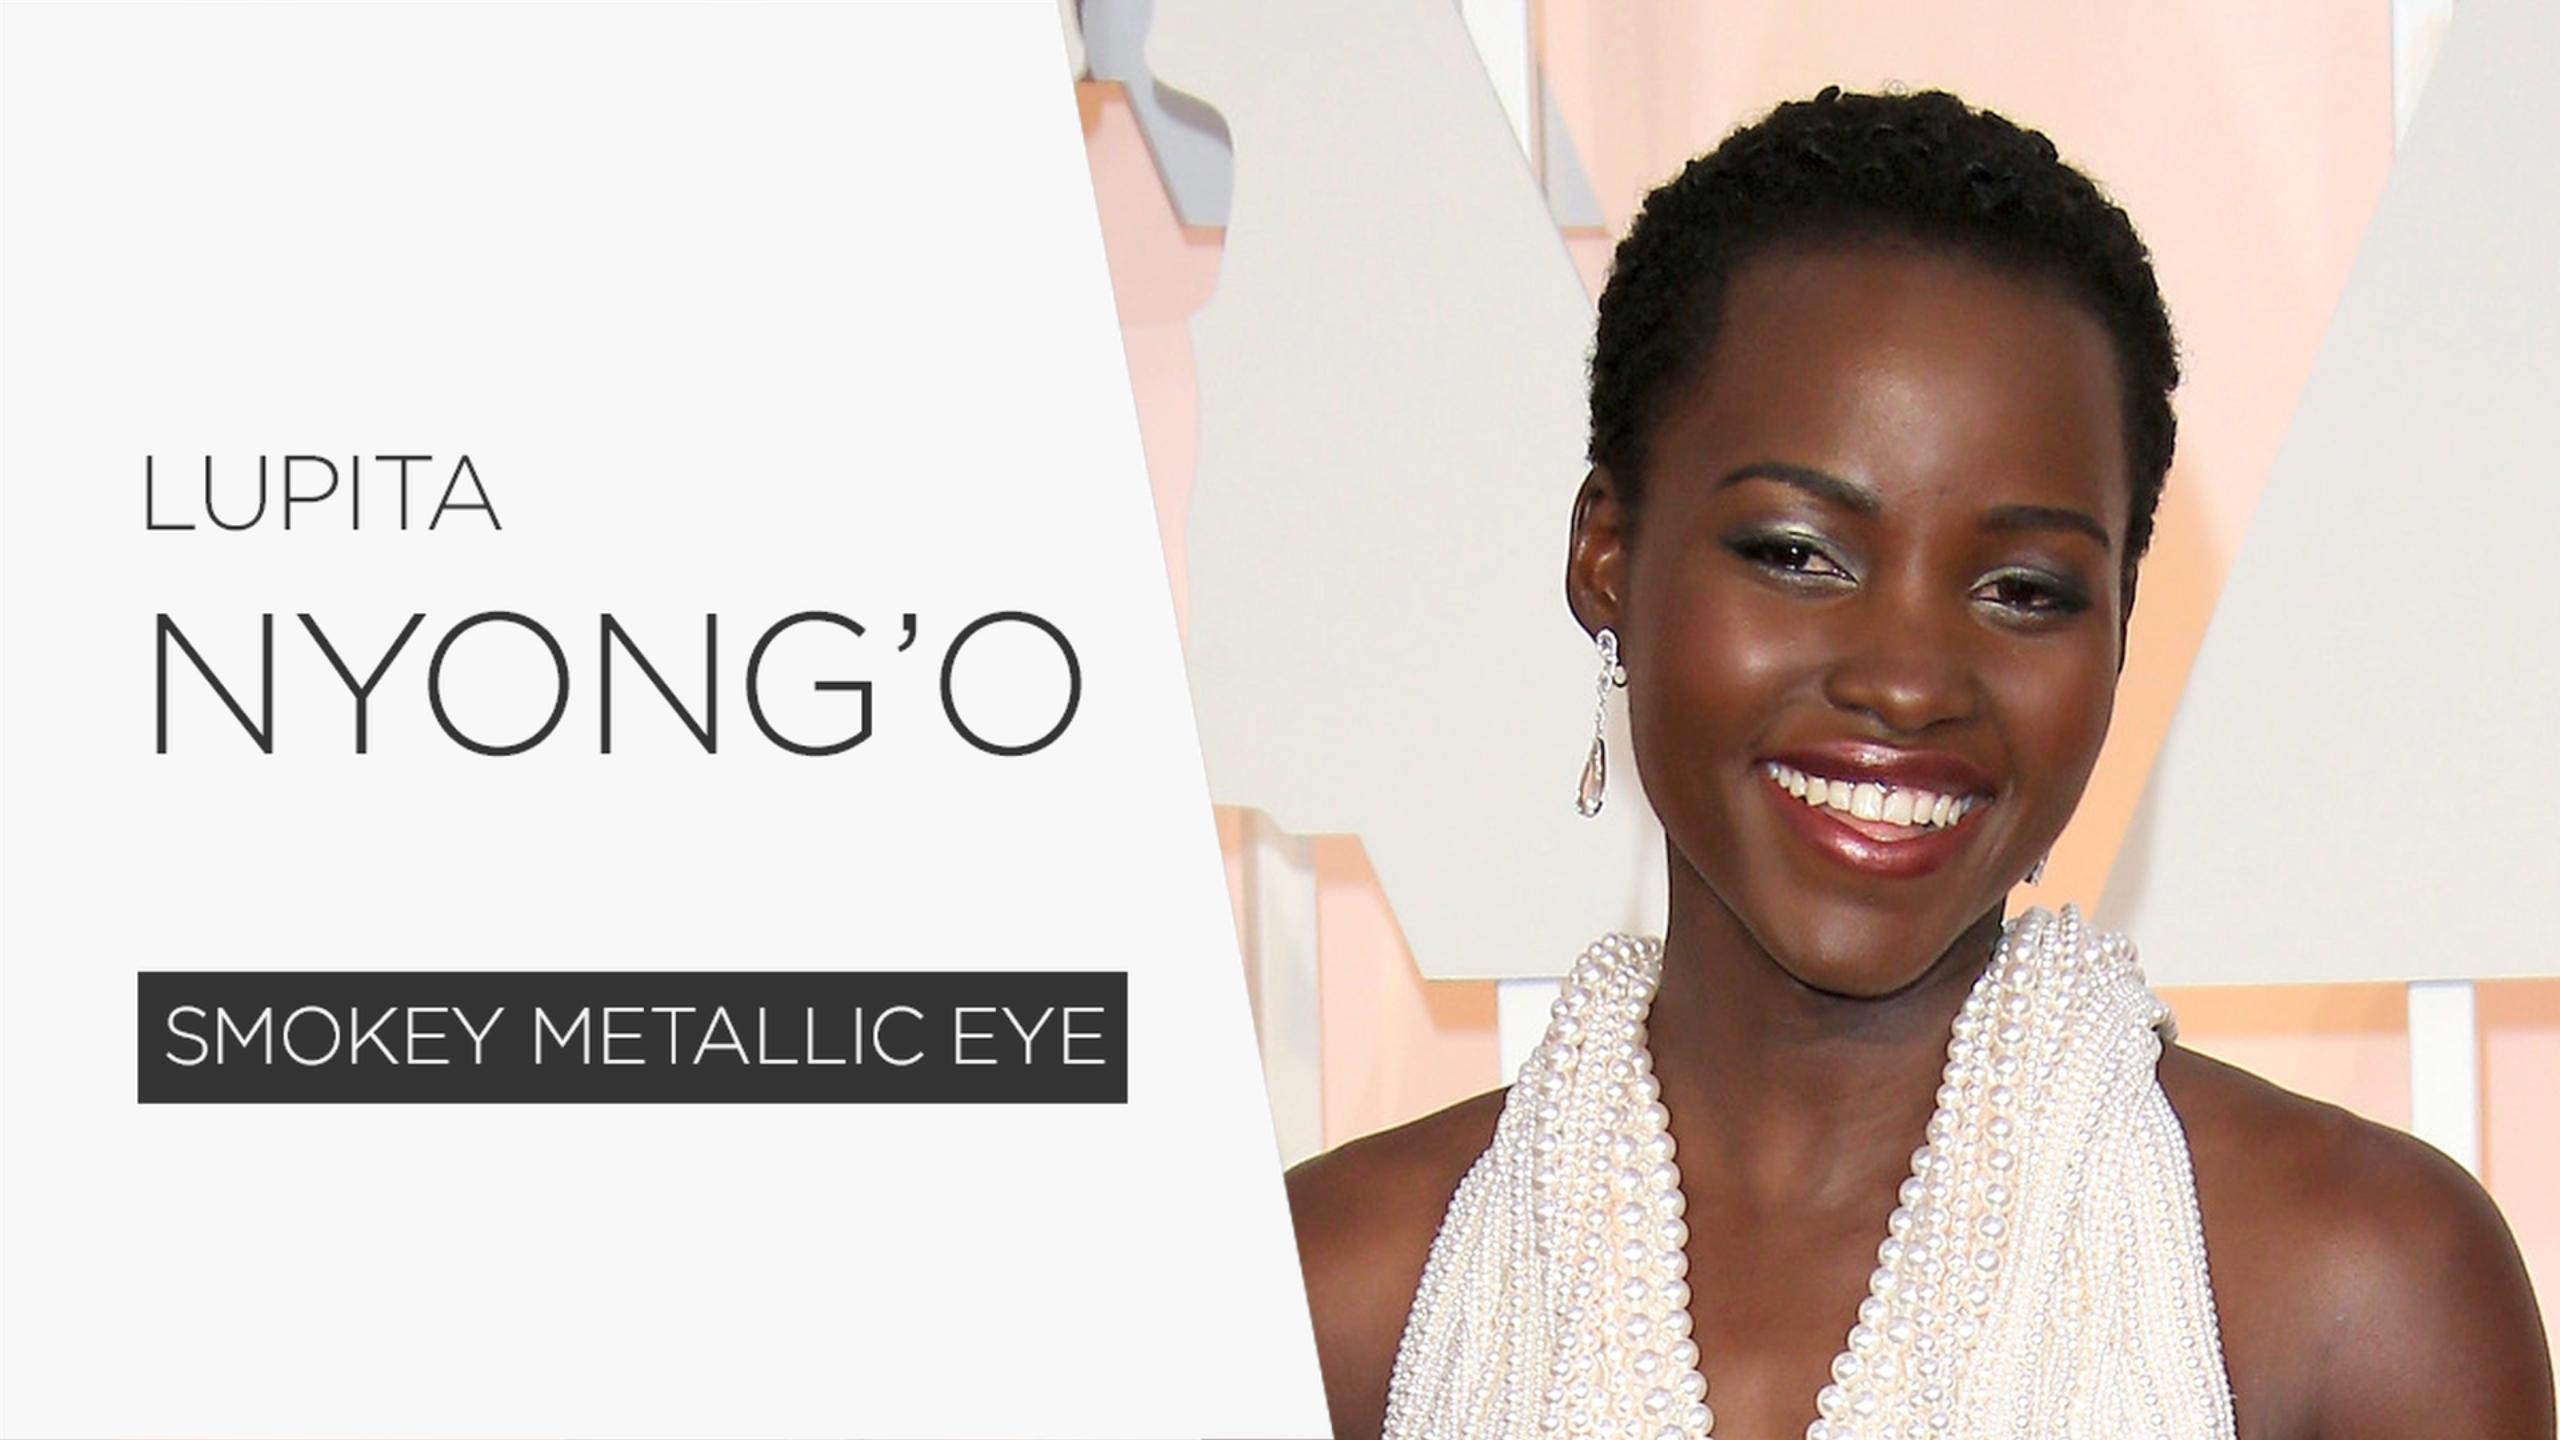 How to Get Lupita Nyong'o's Metallic Smoky Eye [VIDEO]